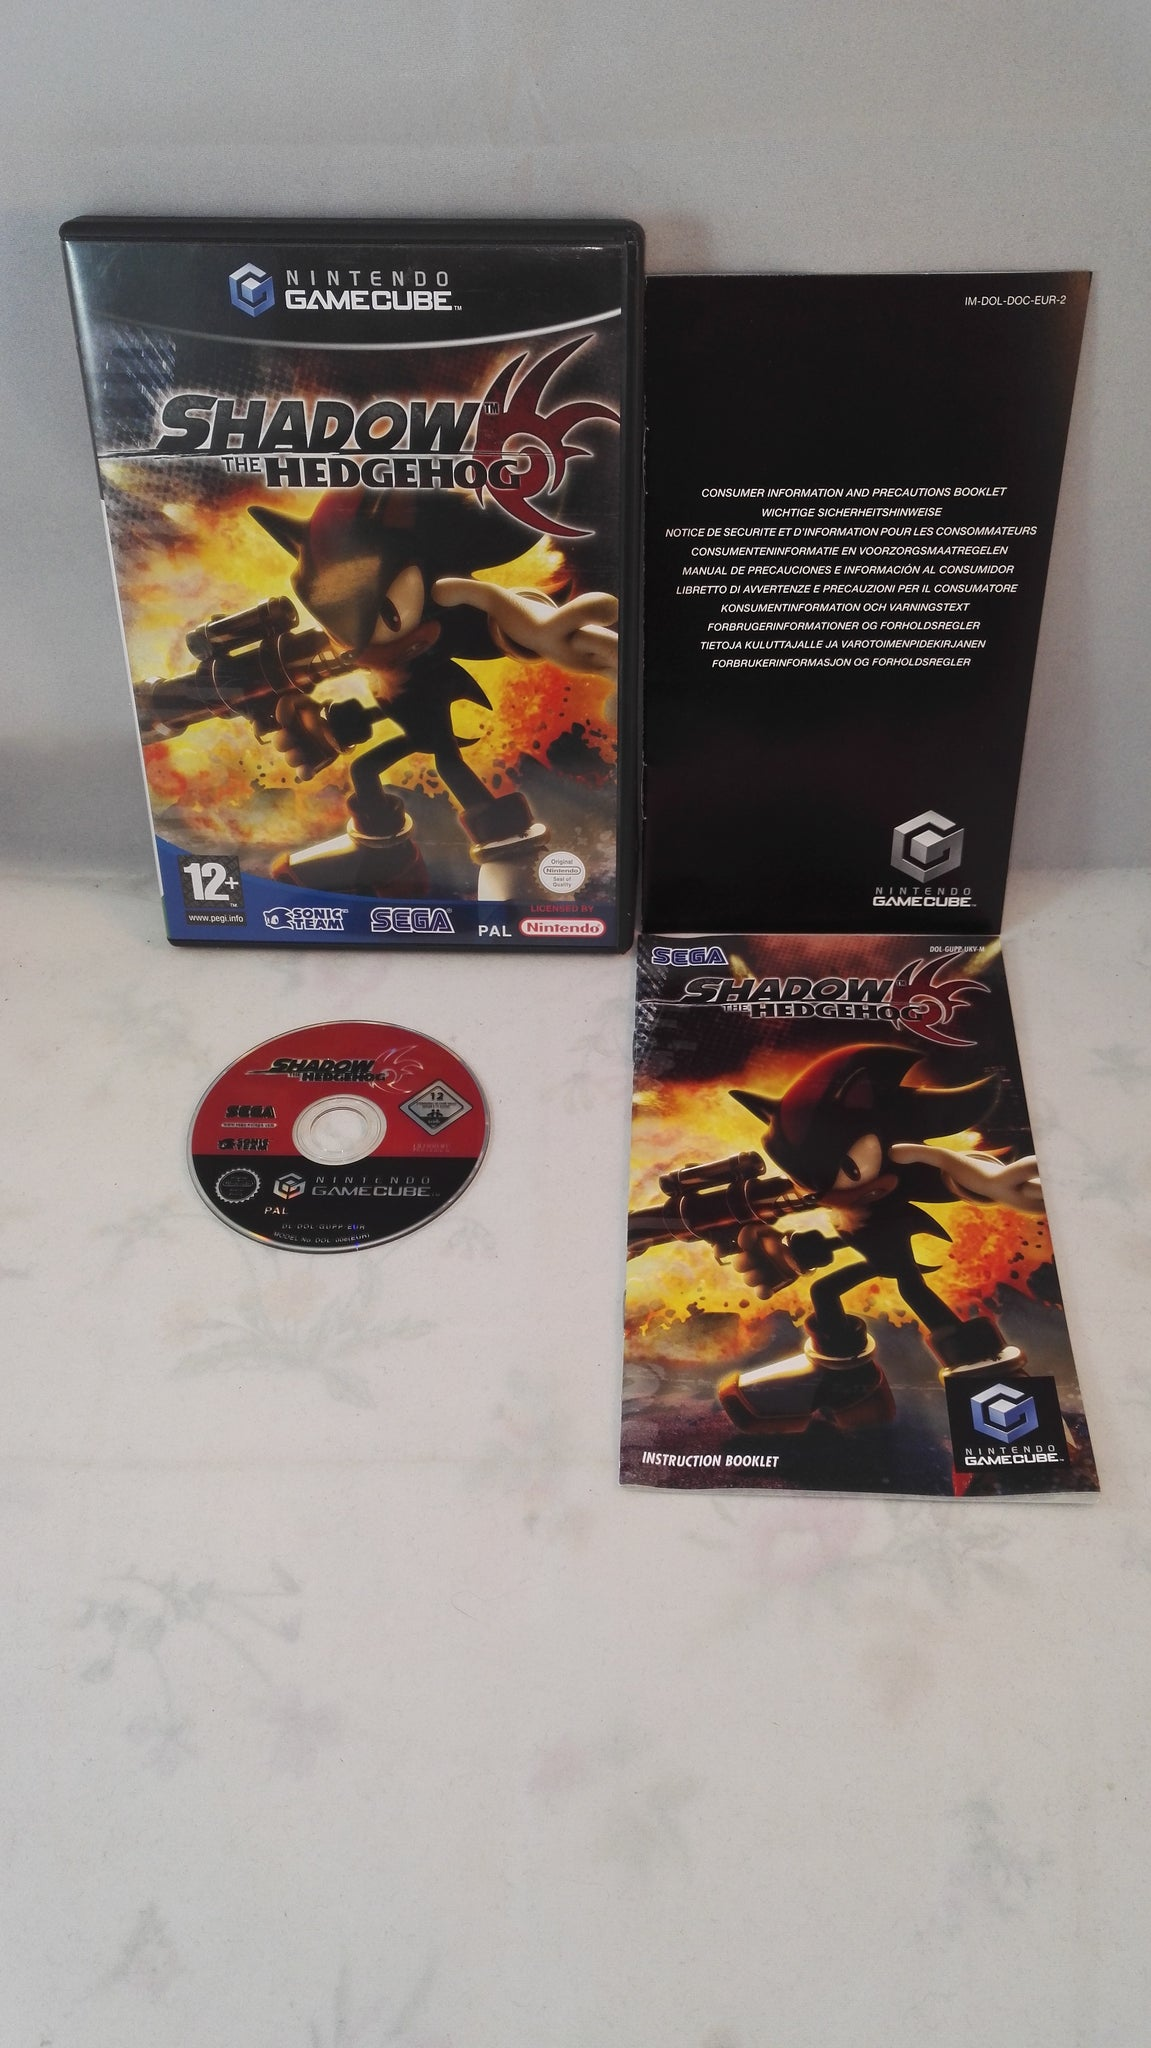 shadow the hedgehog nintendo gamecube game retro gamer heaven rh retrogamerheaven uk Nintendo 3DS Nintendo 3DS